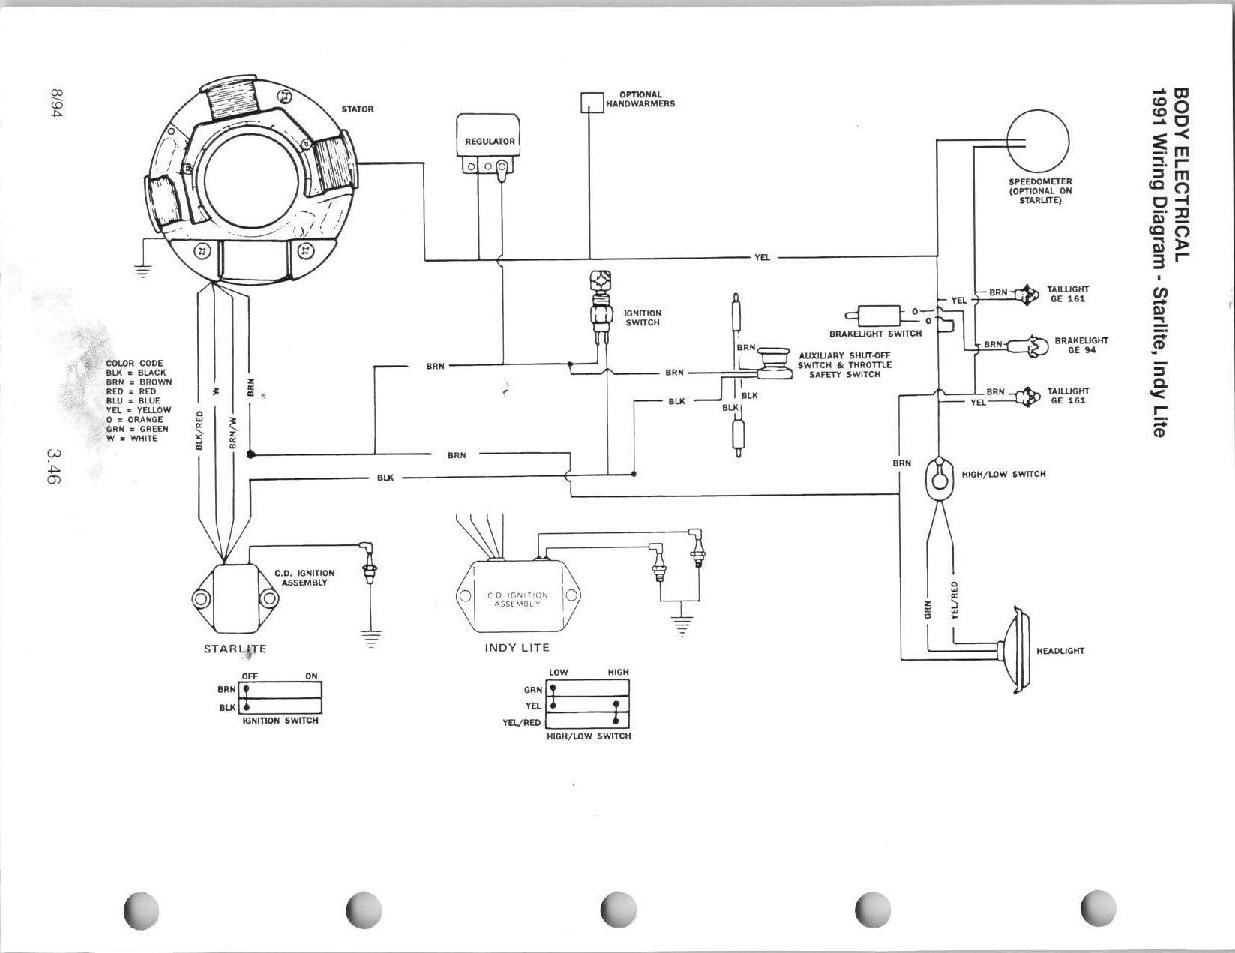 hight resolution of polaris electrical diagram wiring diagram page wiring diagram for polaris trailblazer 250 polaris electrical schematics wiring